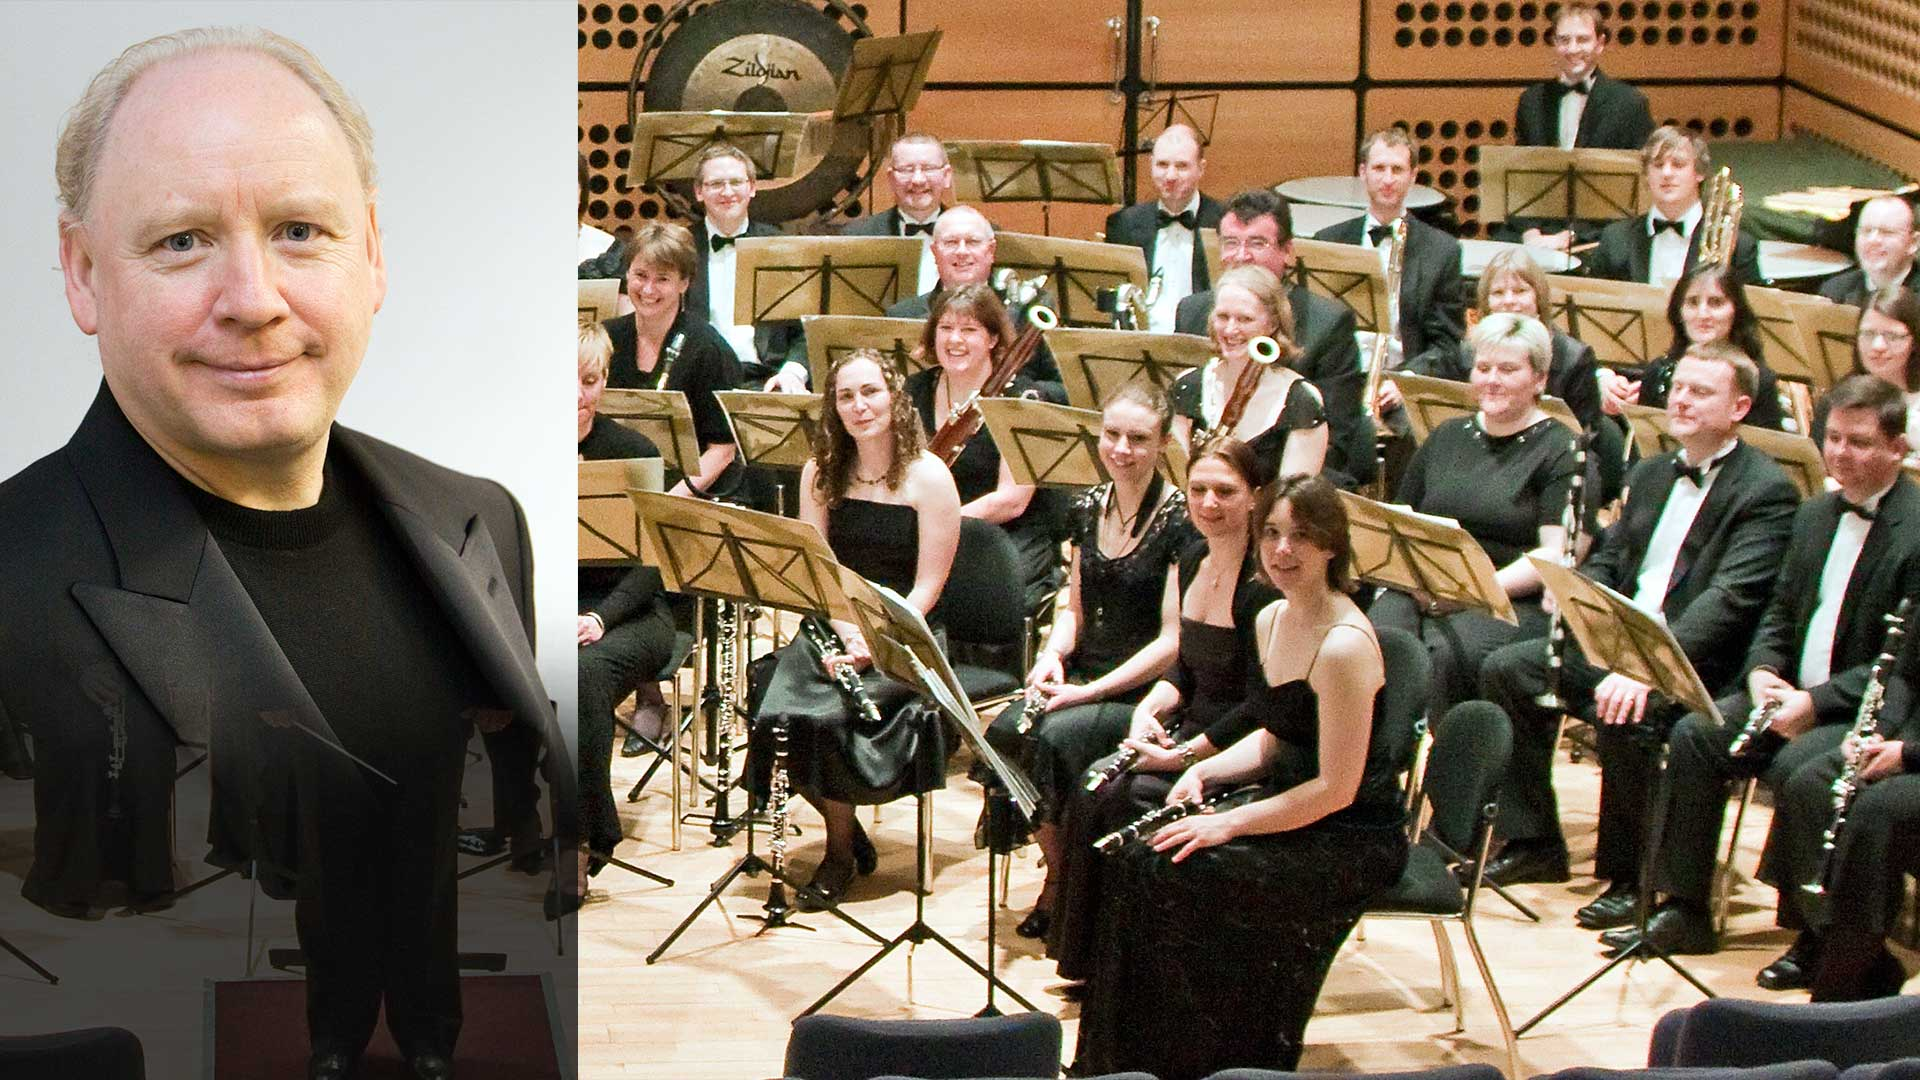 The Nottingham Symphonic Wind Orchestra premieres 'Menu' in United Kingdom